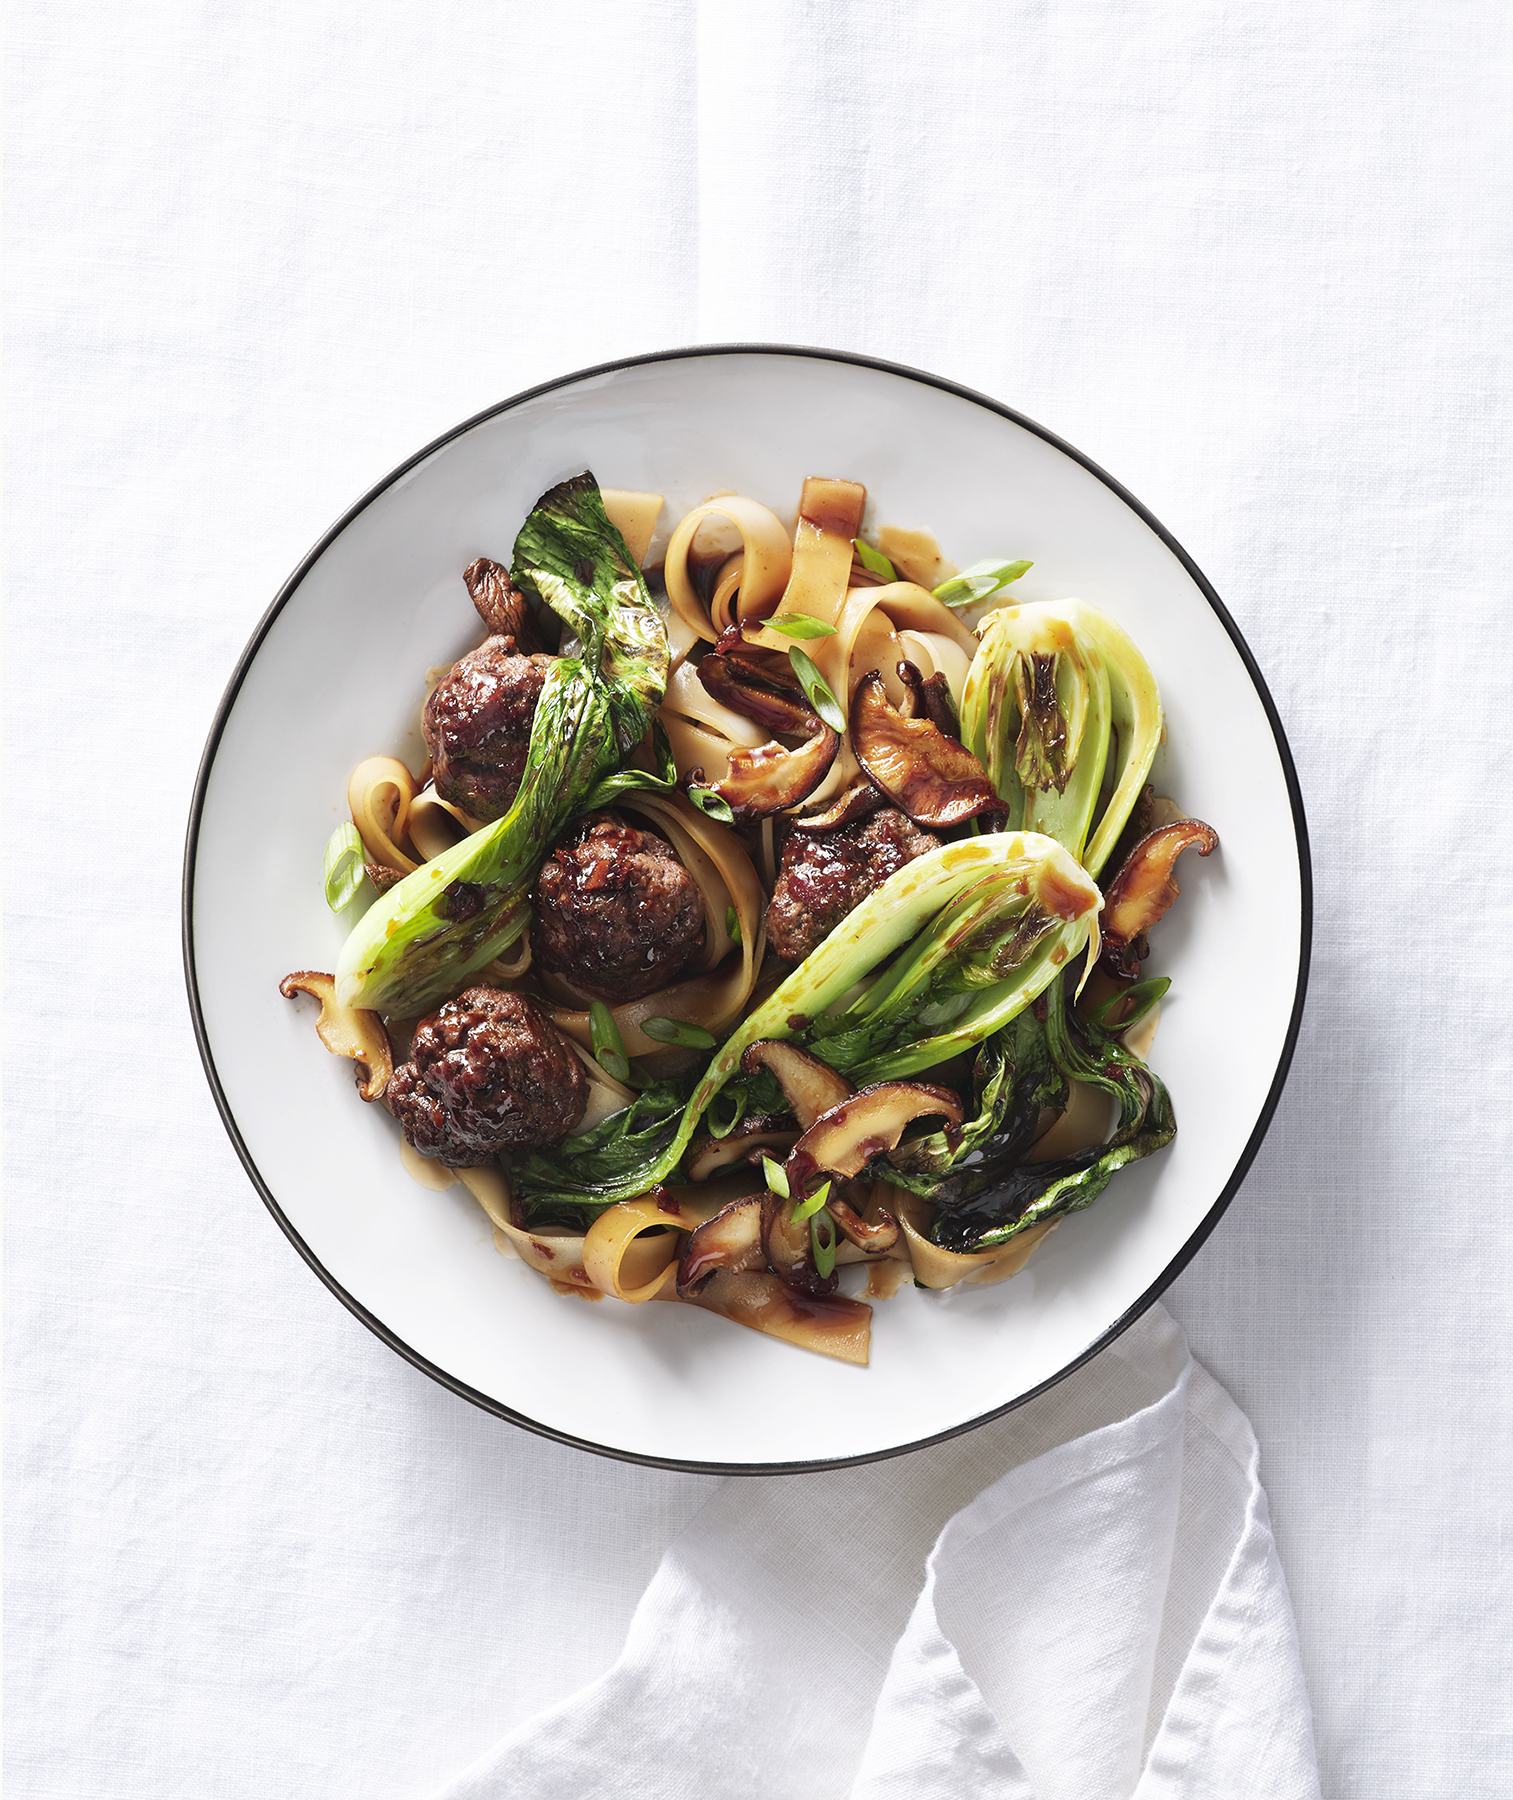 Rice Noodles With Meatballs, Mushrooms, and Bok Choy